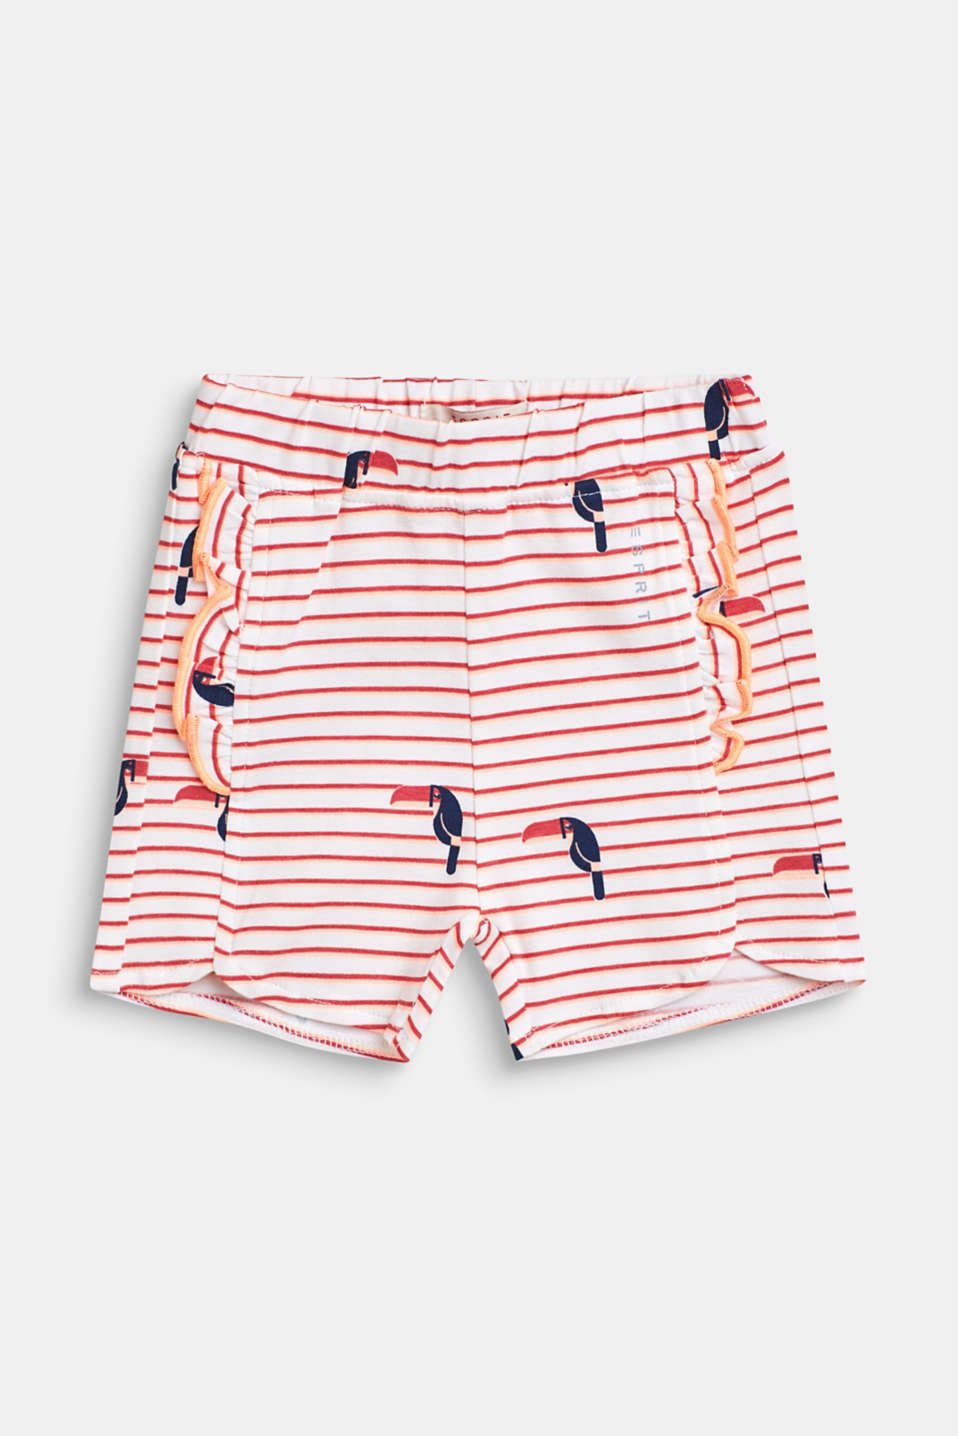 Esprit - Short à imprimé toucan, en coton stretch